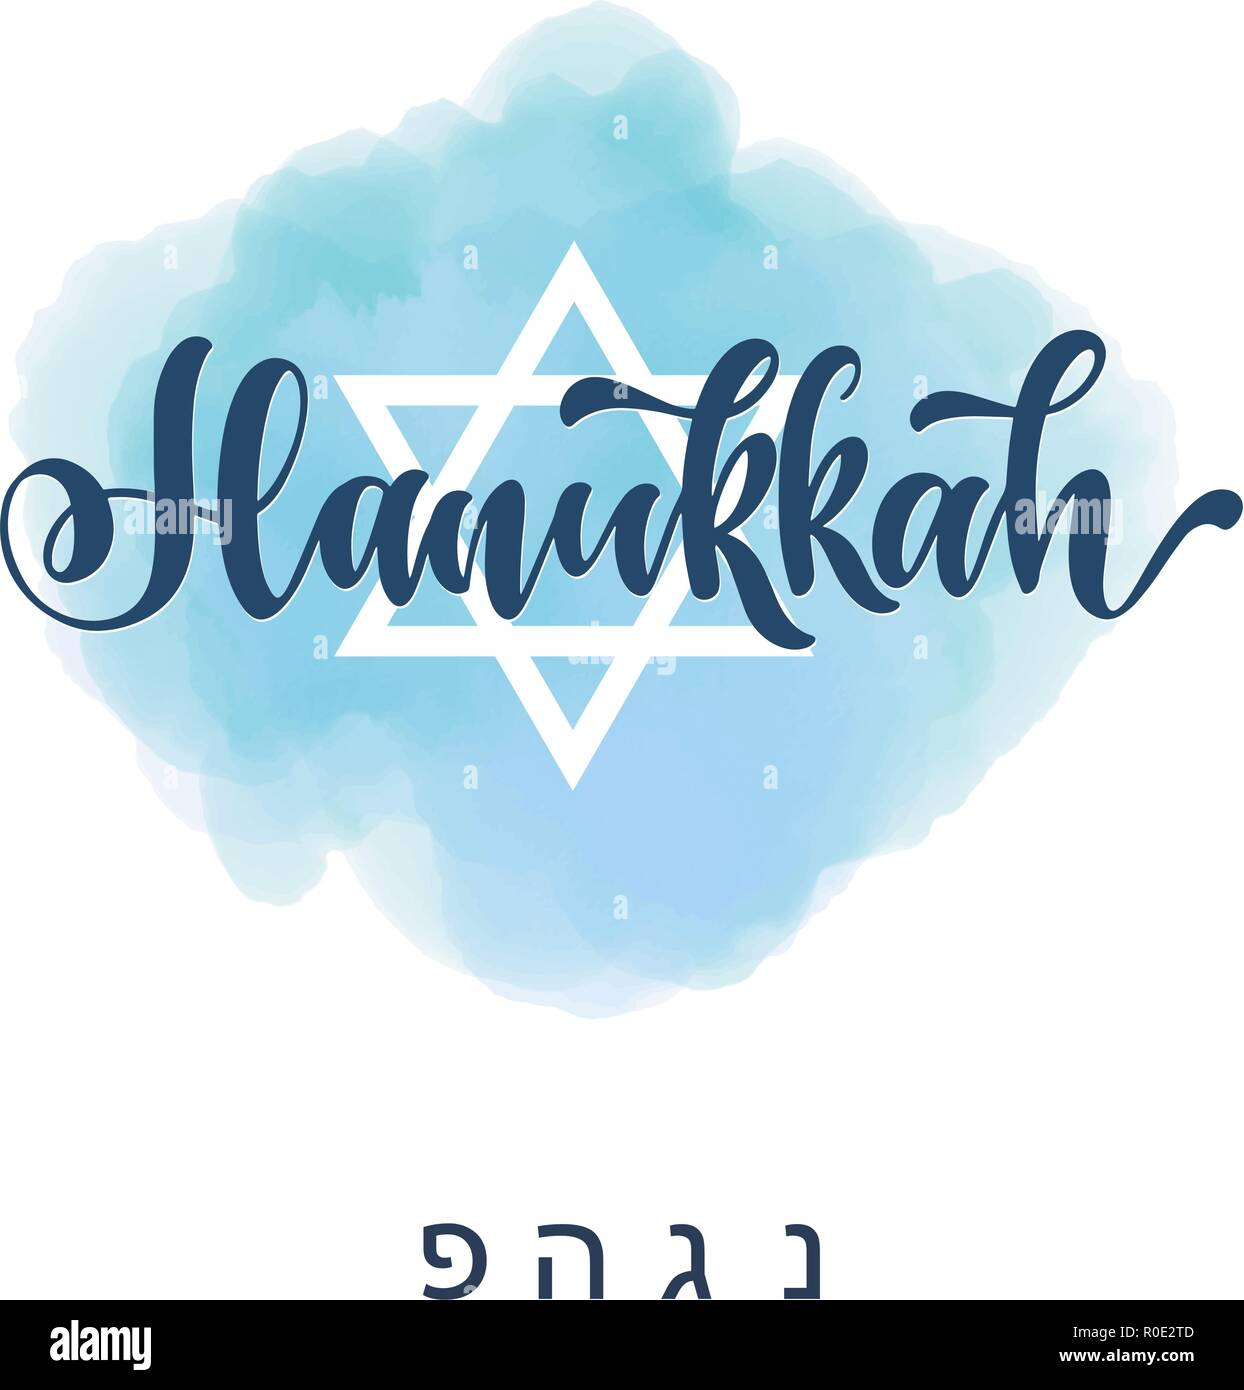 Happy hanukkah hand drawn lettering, dreidels and jewish stars.  Elements for invitations, posters, greeting cards. T-shirt design. Seasons Greetings. - Stock Vector